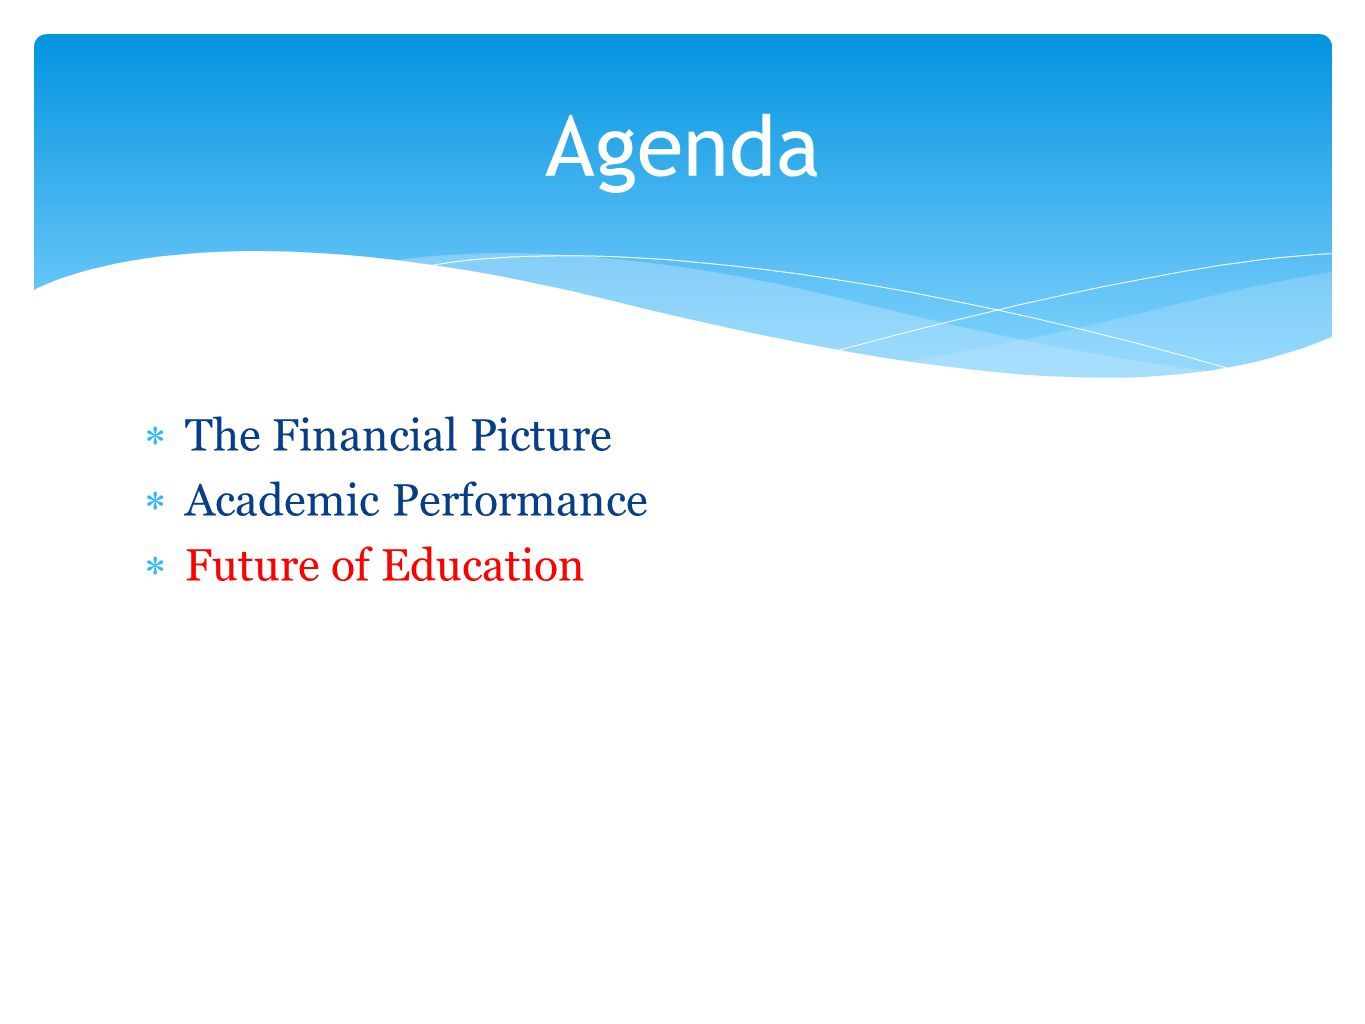  The Financial Picture  Academic Performance  Future of Education Agenda